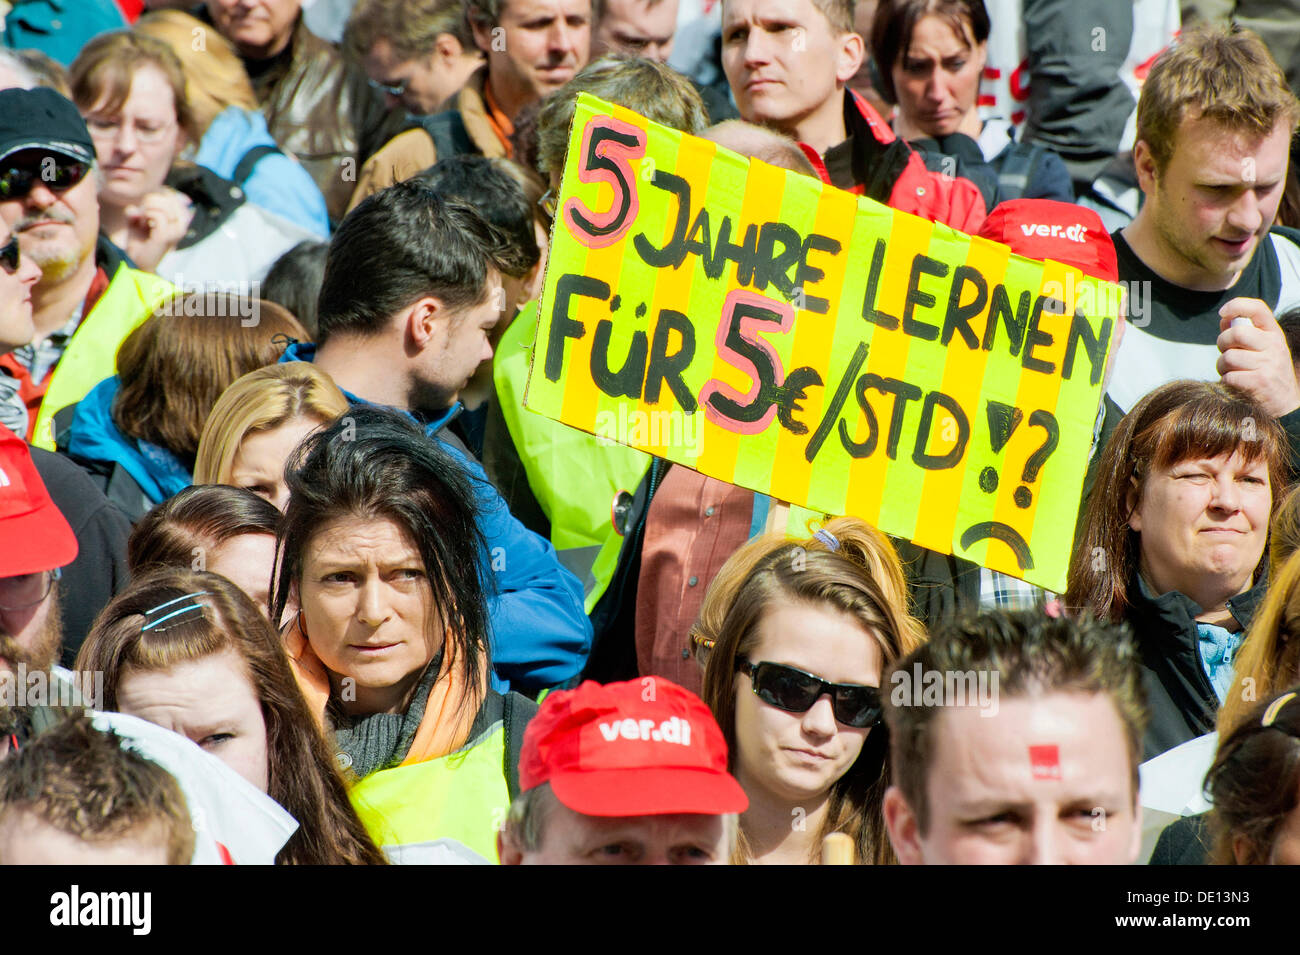 Banner '5 Jahre lernen, fuer 5 Euros pro Stunde', German for 'learn for five years for earning five euros per hour', warning - Stock Image